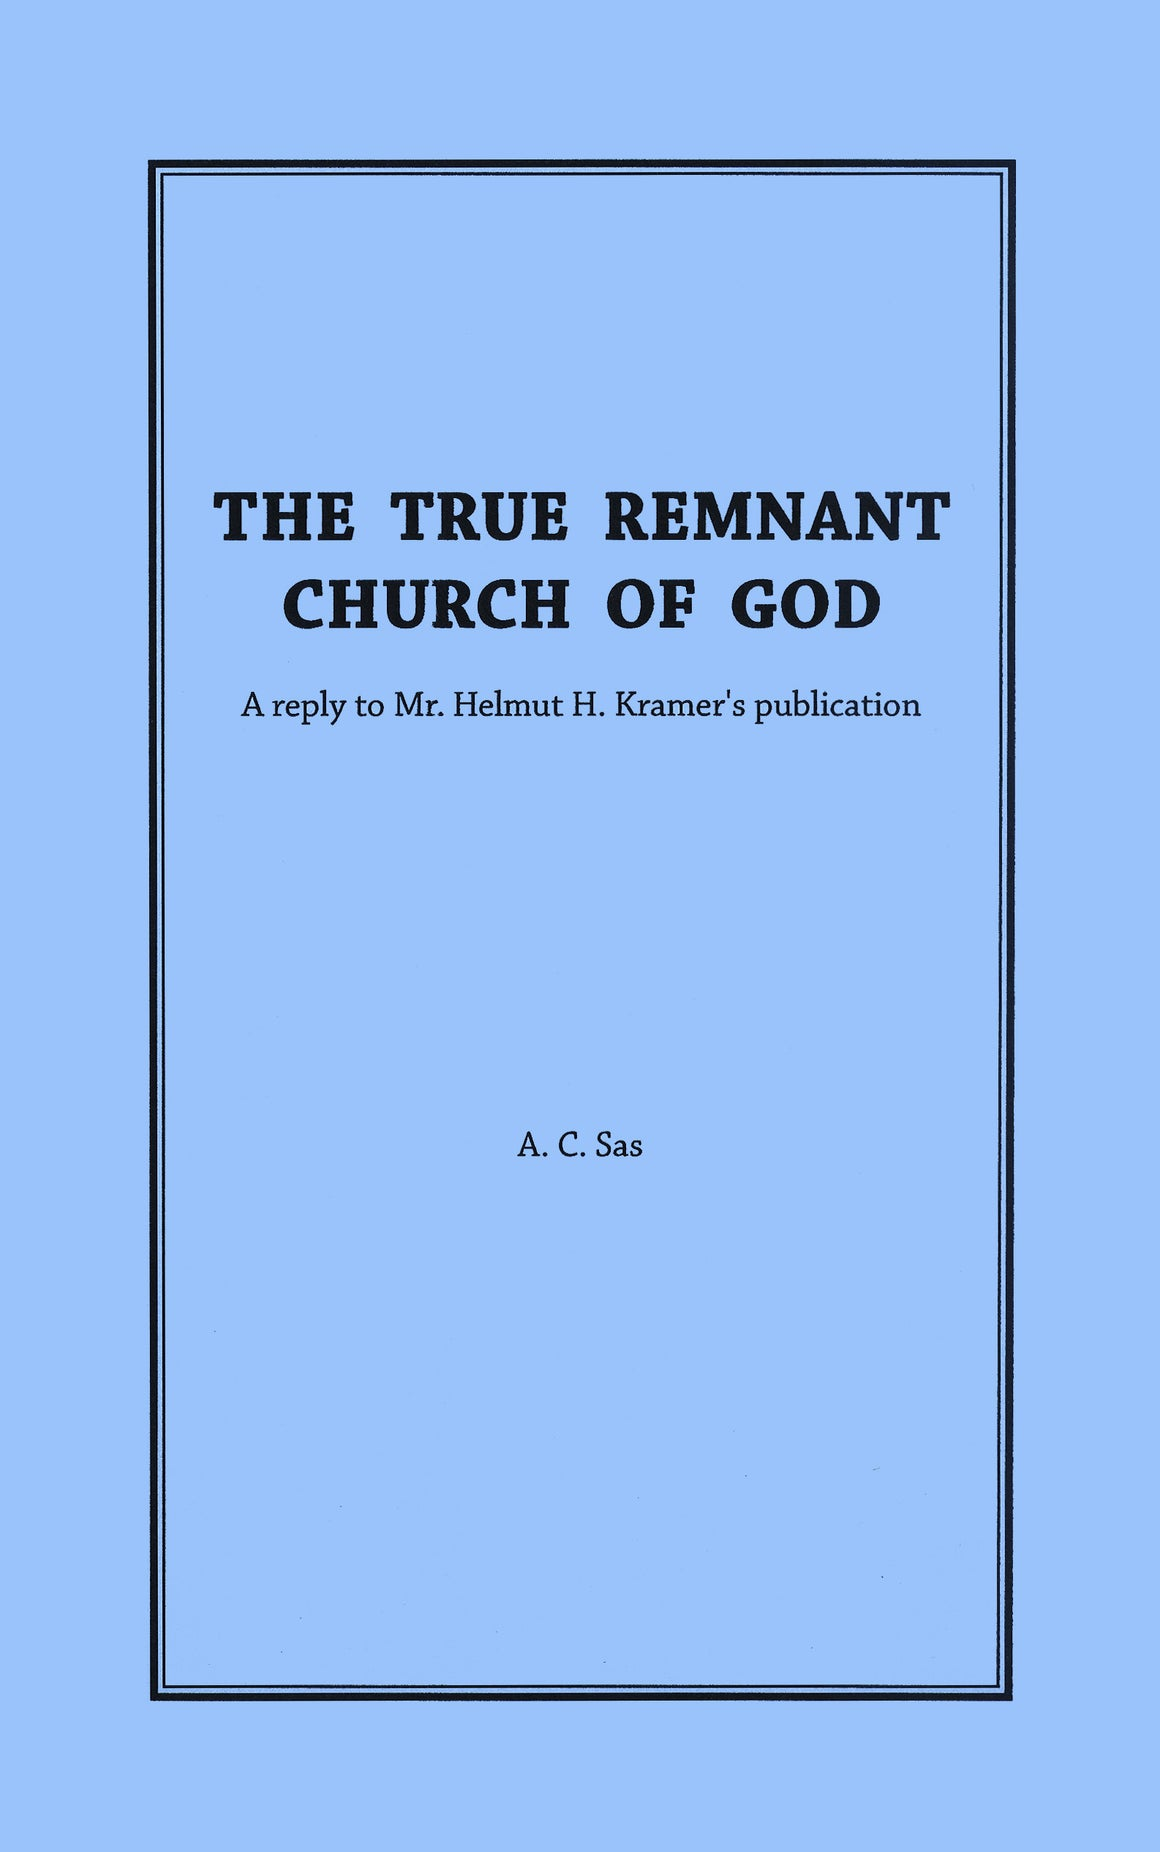 The True Remnant Church of God